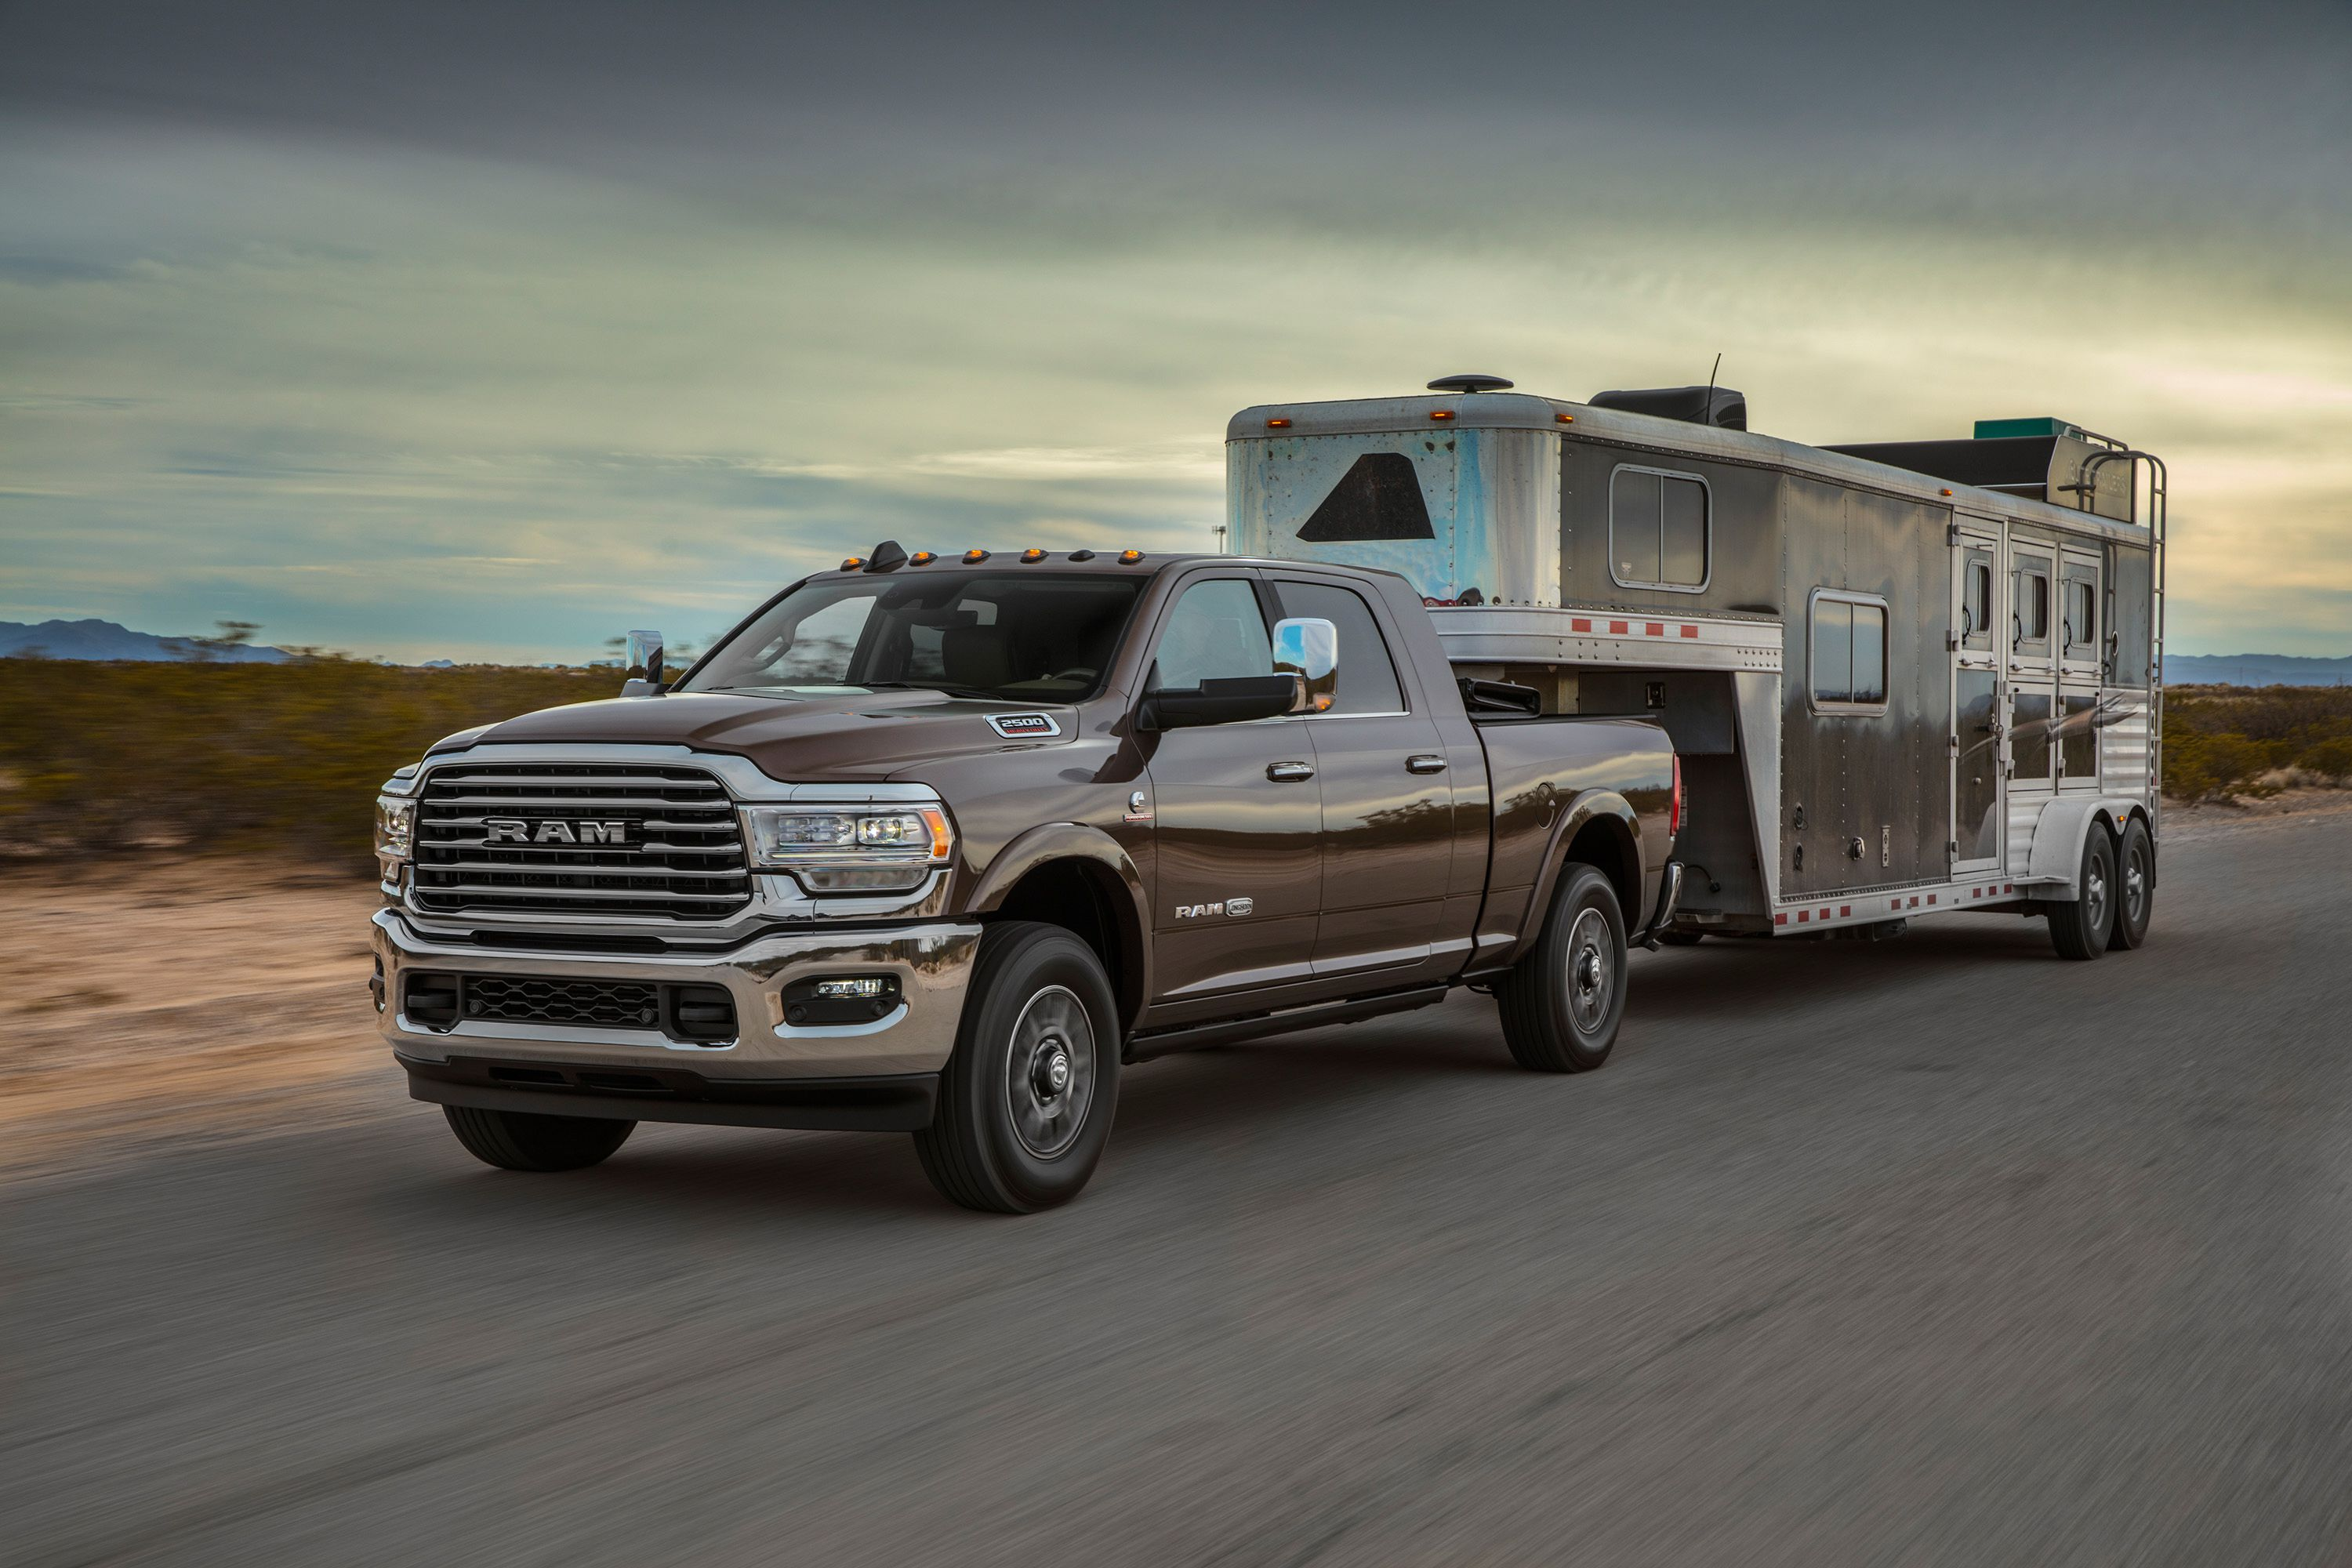 42 The Best 2020 Ram 3500 Concept